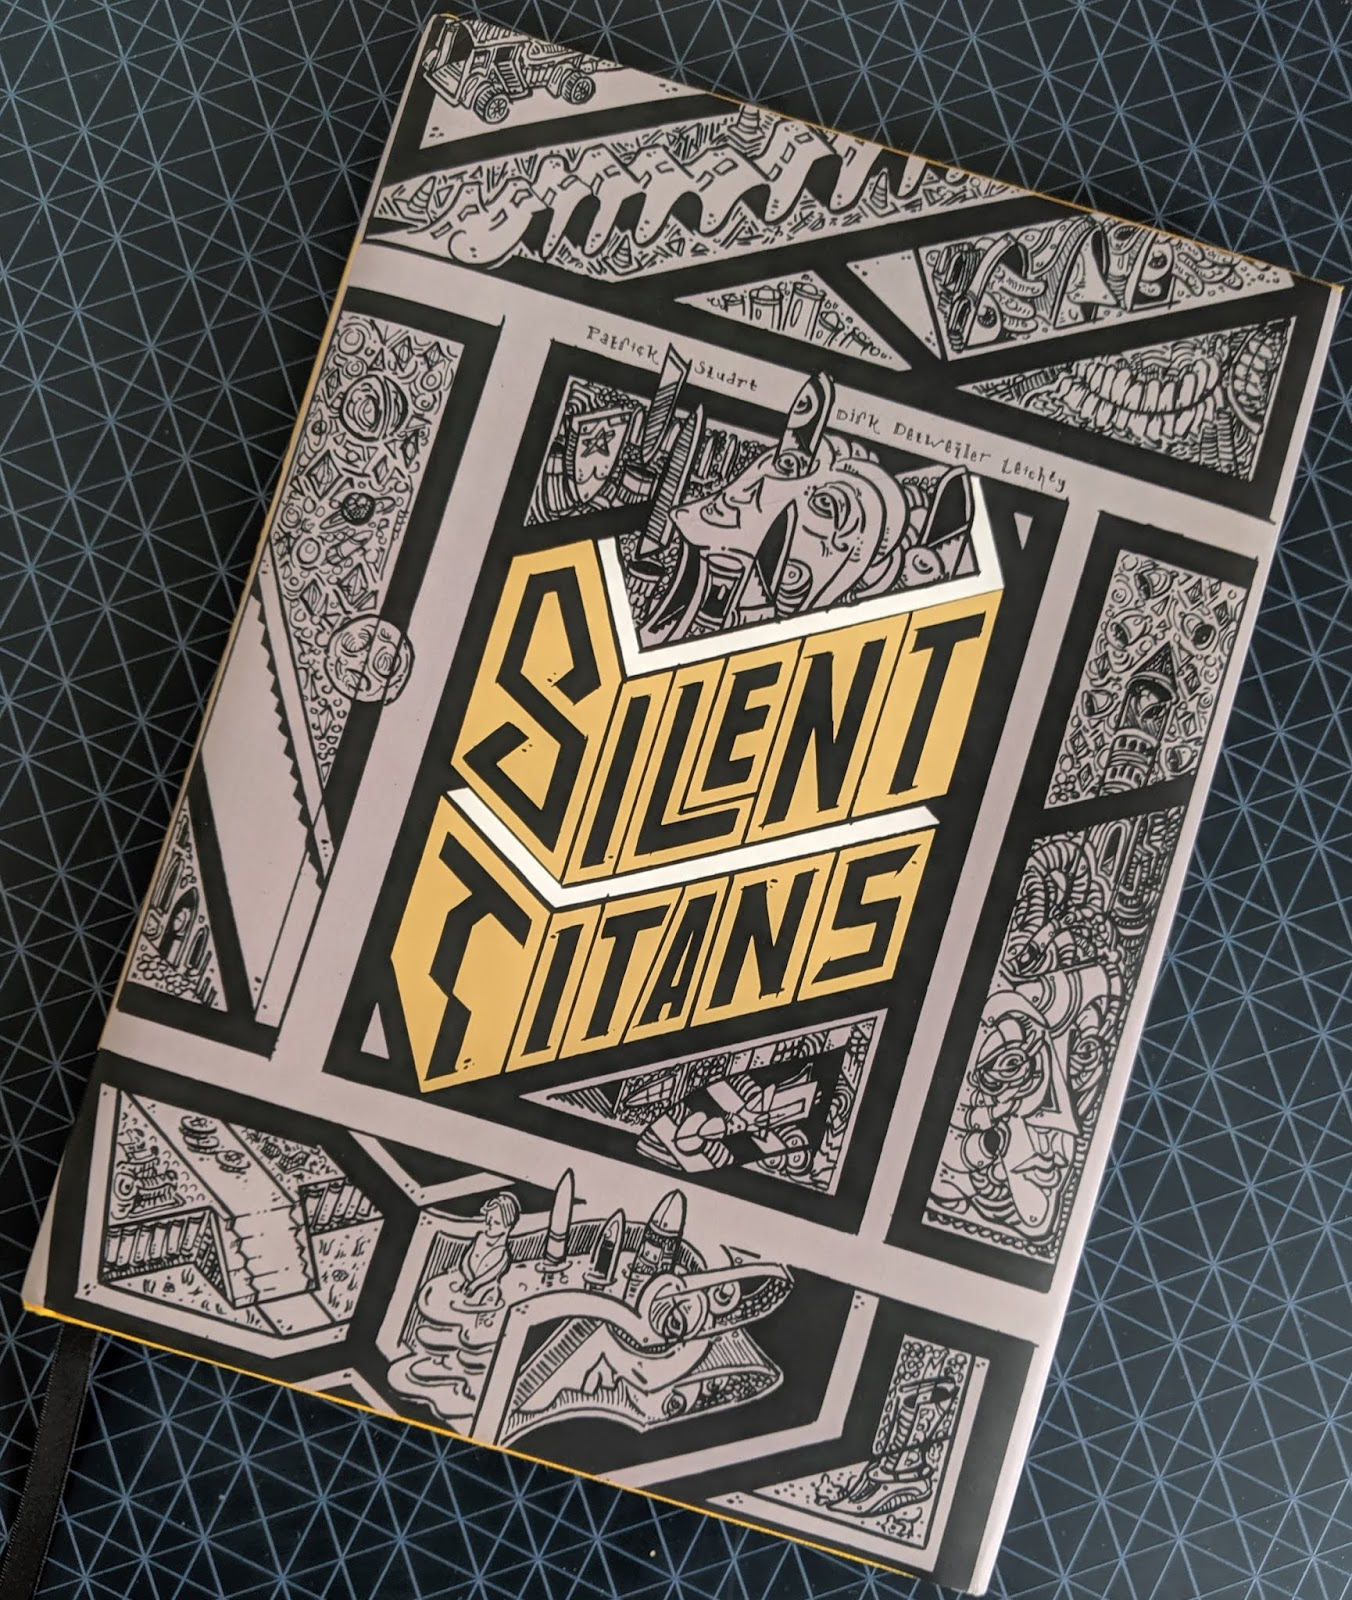 what does silent reverie mean